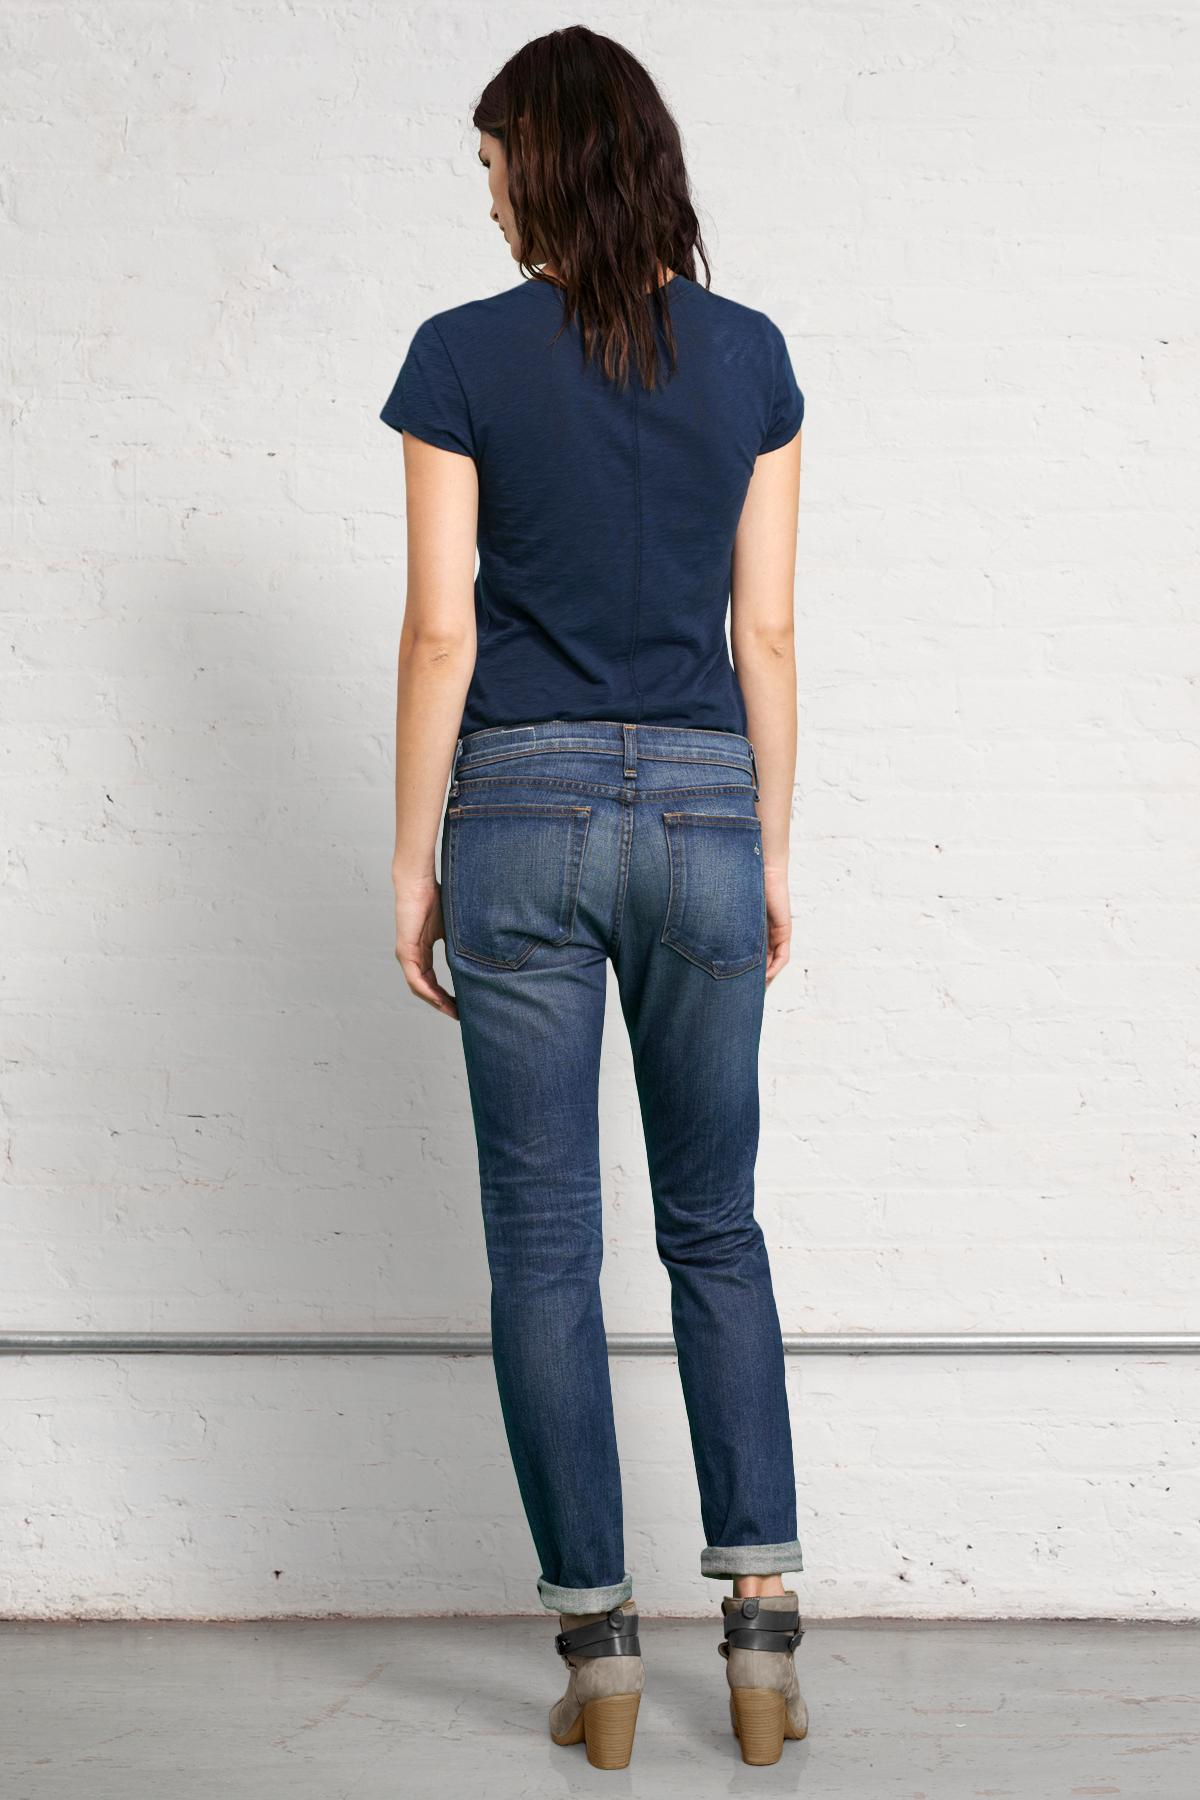 Relaxed Jeans For Women